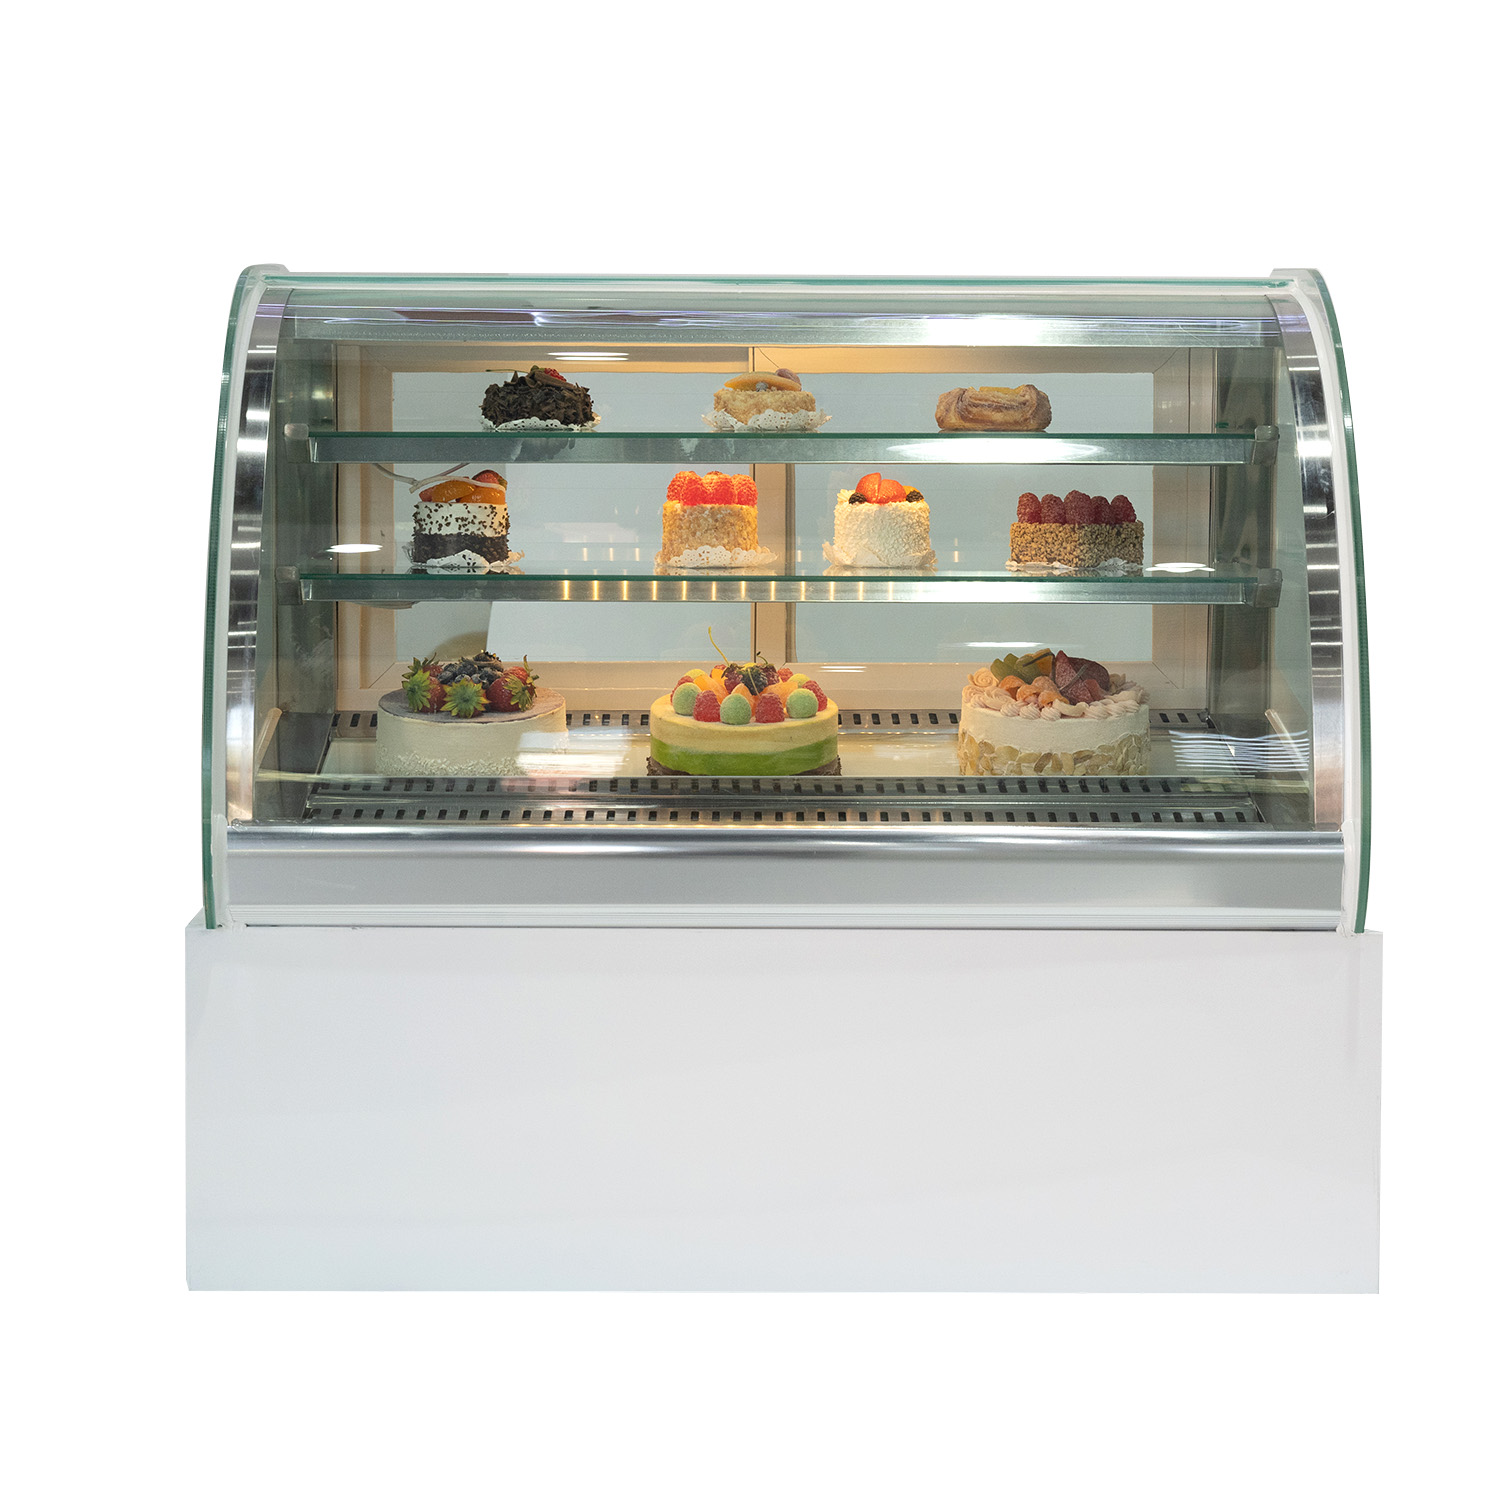 900mm cake showcase 102L display refrigerator cold food bars counter cake chiler table top cake chiller display